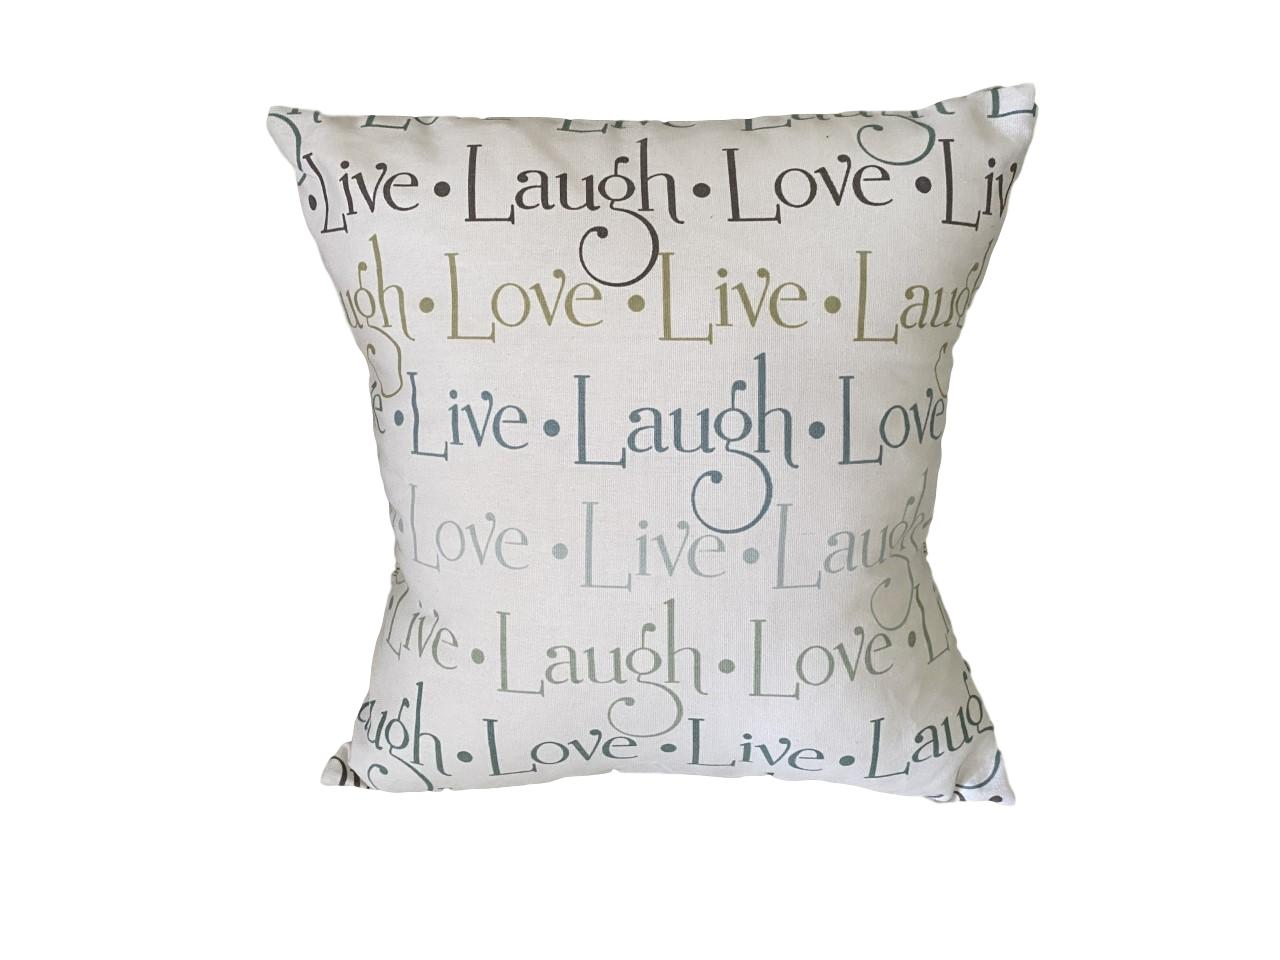 16 home decor pillow kit with insert included live laugh love writing in light teal tan light blue and taupe on off white